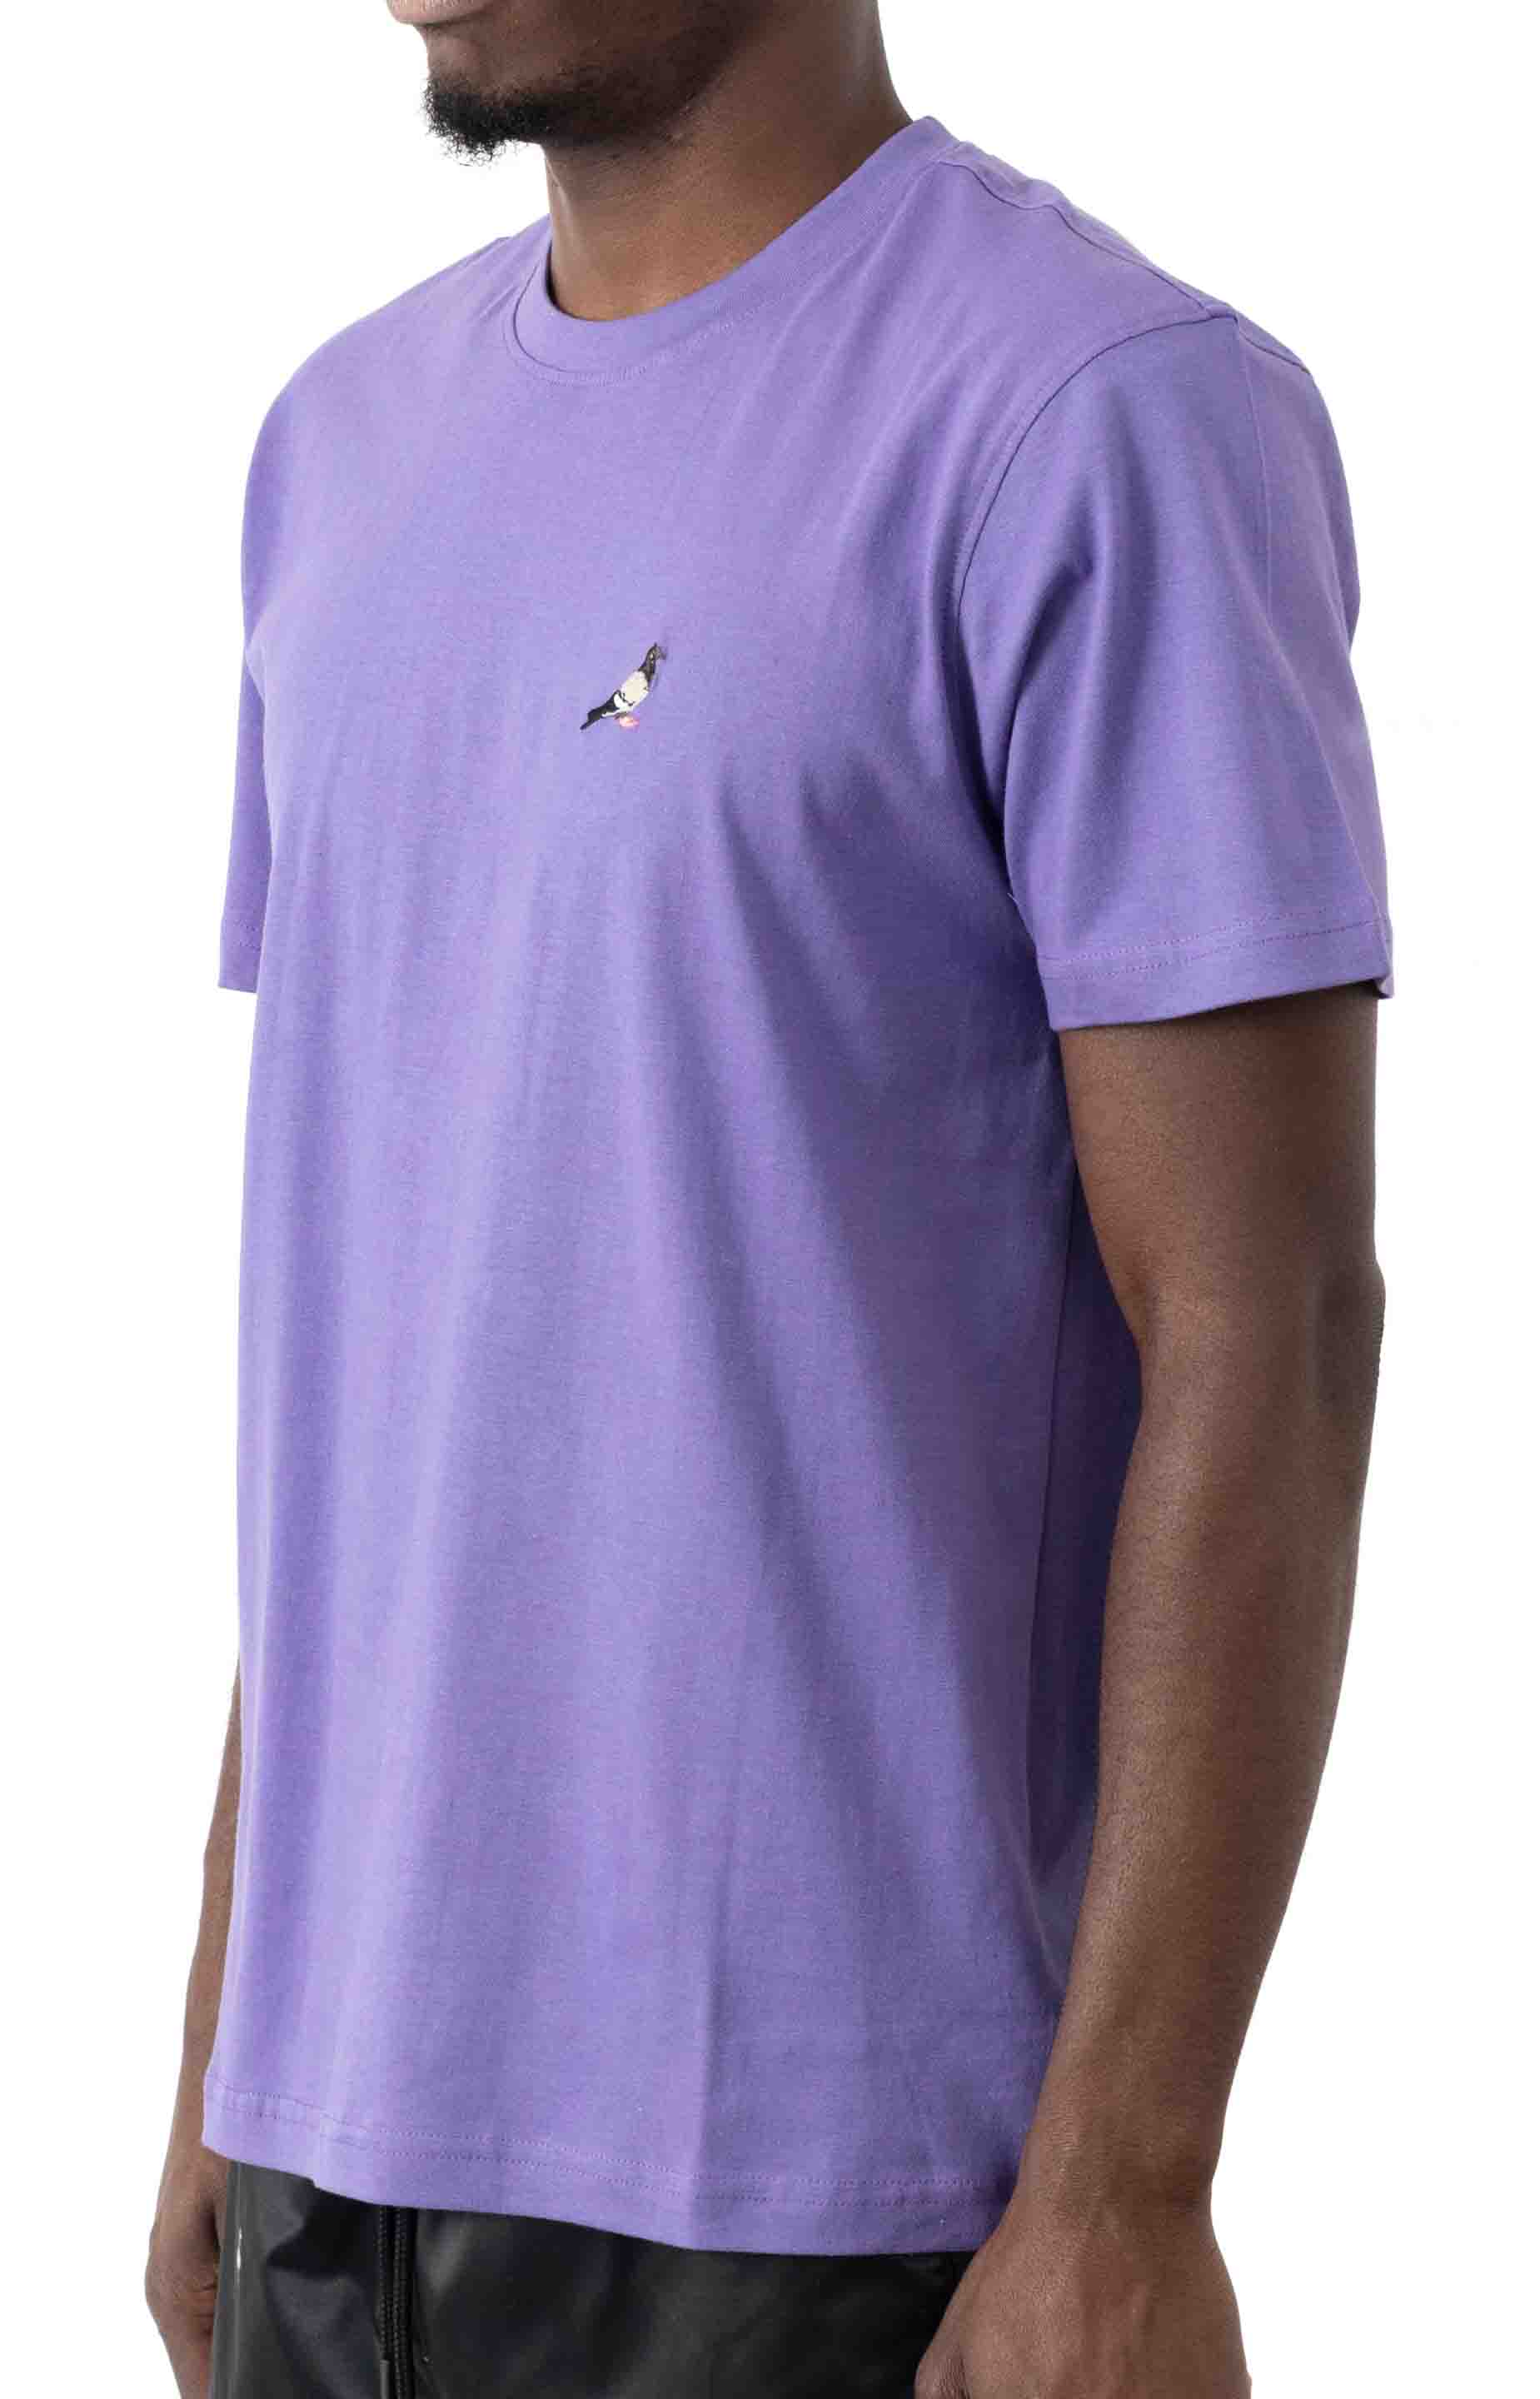 Embroidered Pigeon T-Shirt - Violet  2